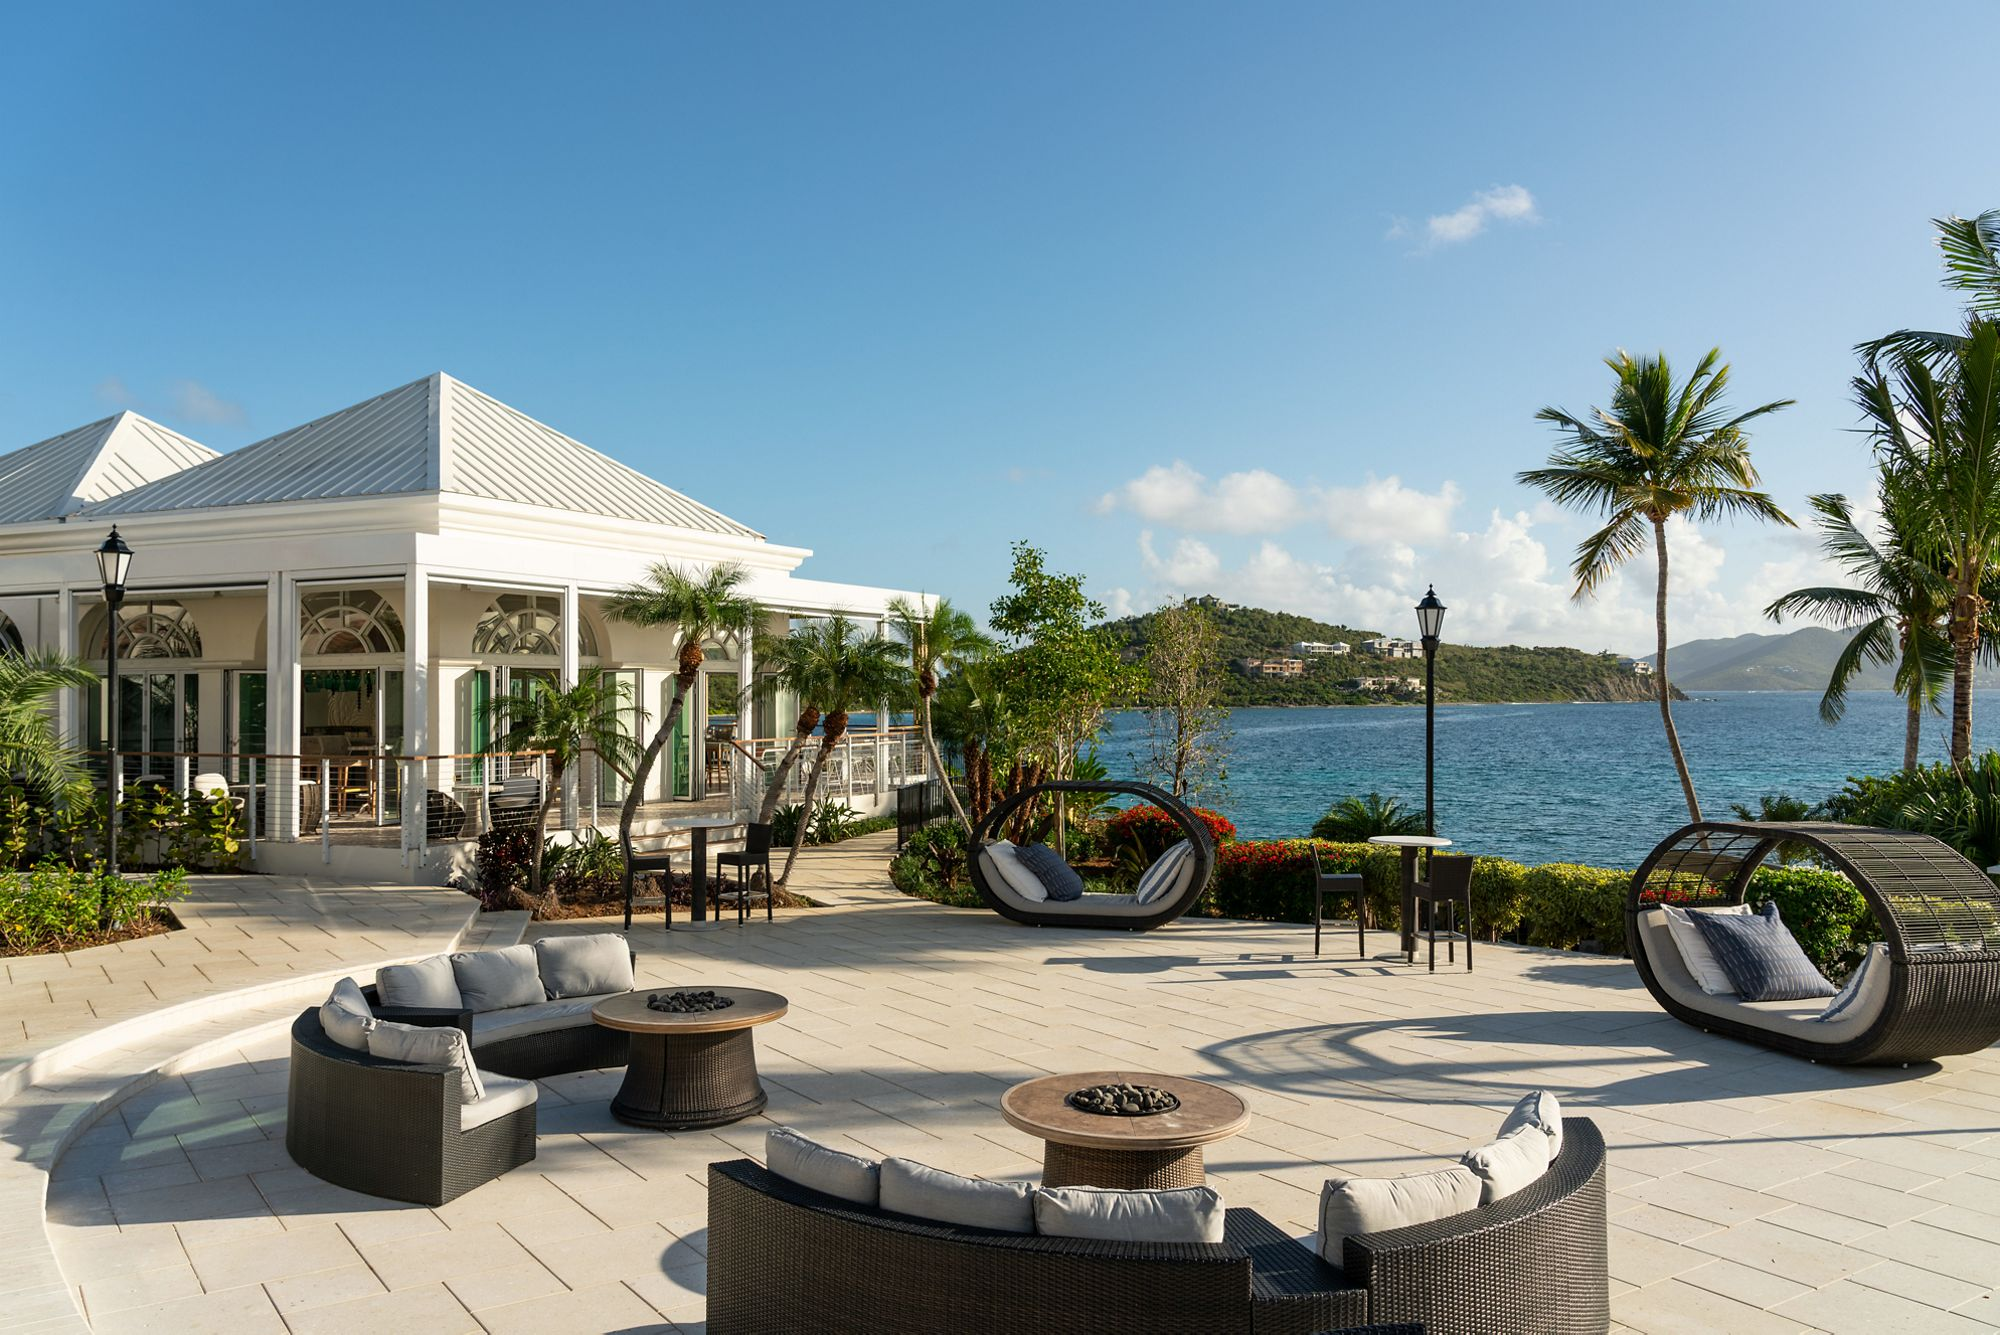 Hotels in St. Thomas - US Virgin Islands Resorts | The Ritz-Carlton, St.  Thomas